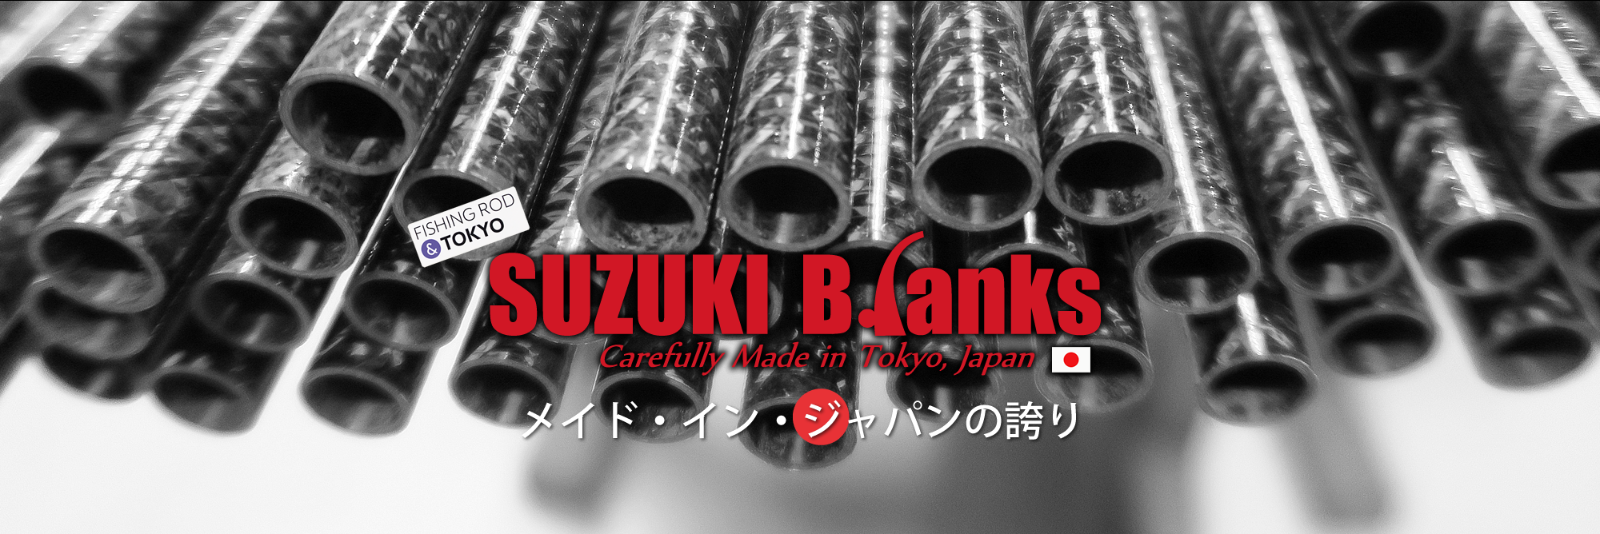 """Made in Japan Fast Act. 2pc Rod building SUZUKI BLANK RXF-12lb-662 6/'6/"""""""